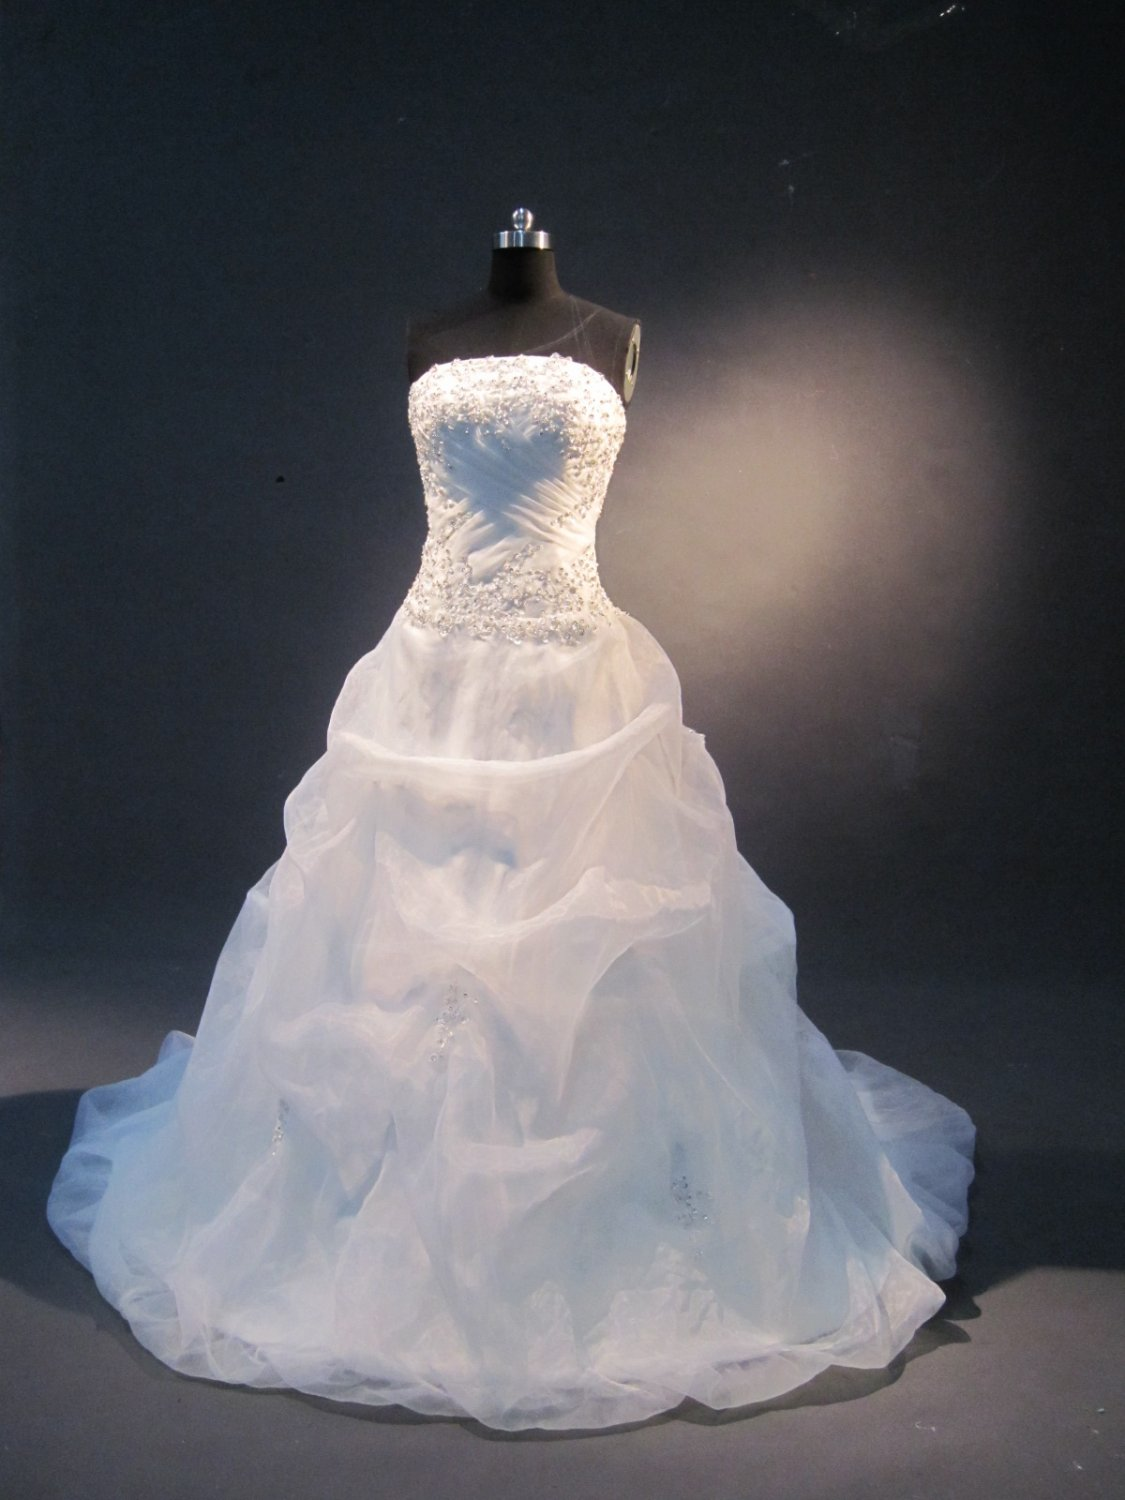 real bubble skirt cute wedding gown IMG1631